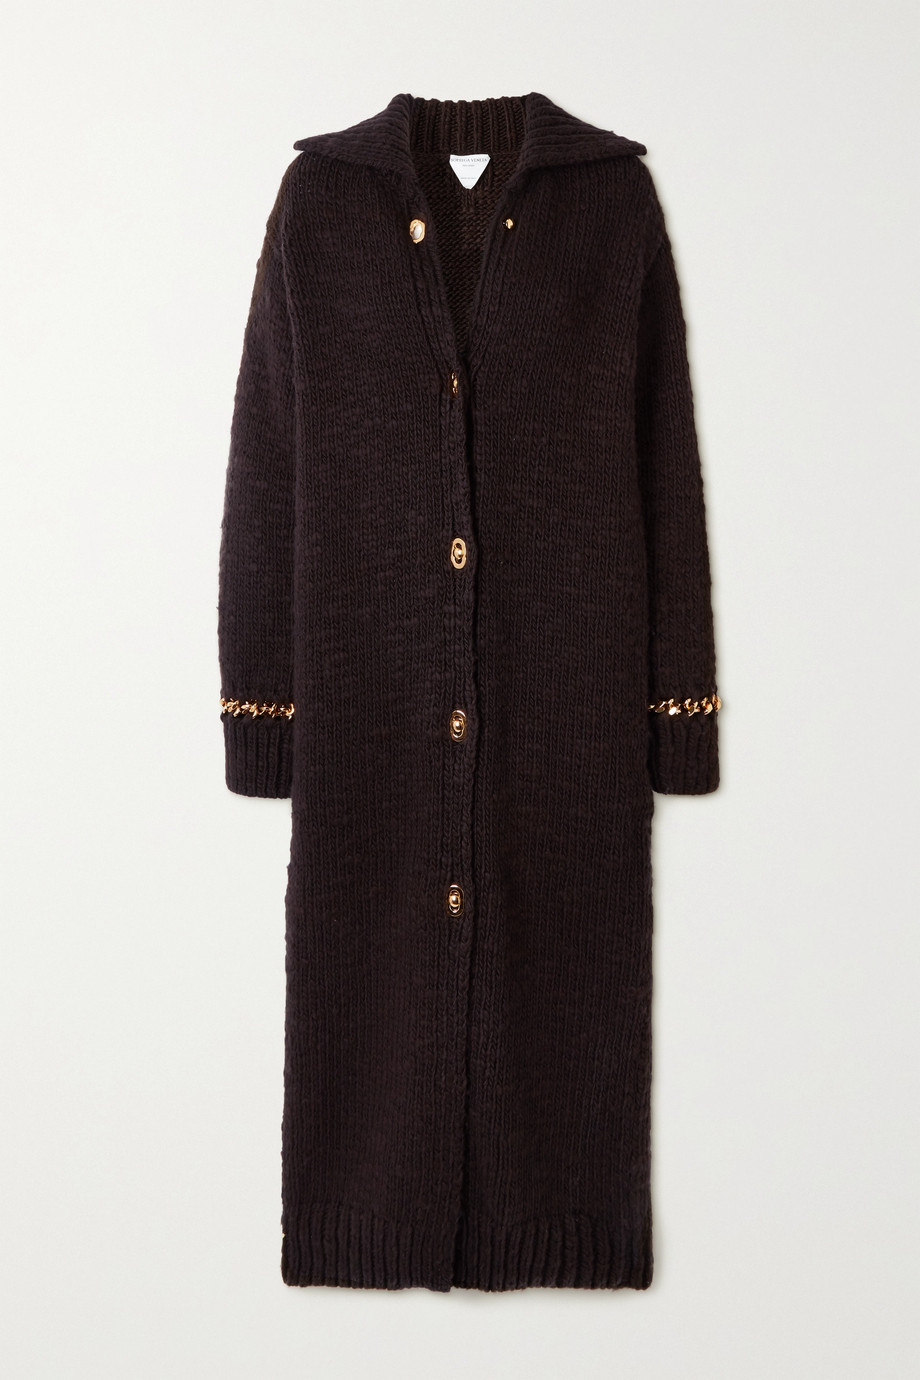 Bottega Veneta Chain-embellished wool-blend coat